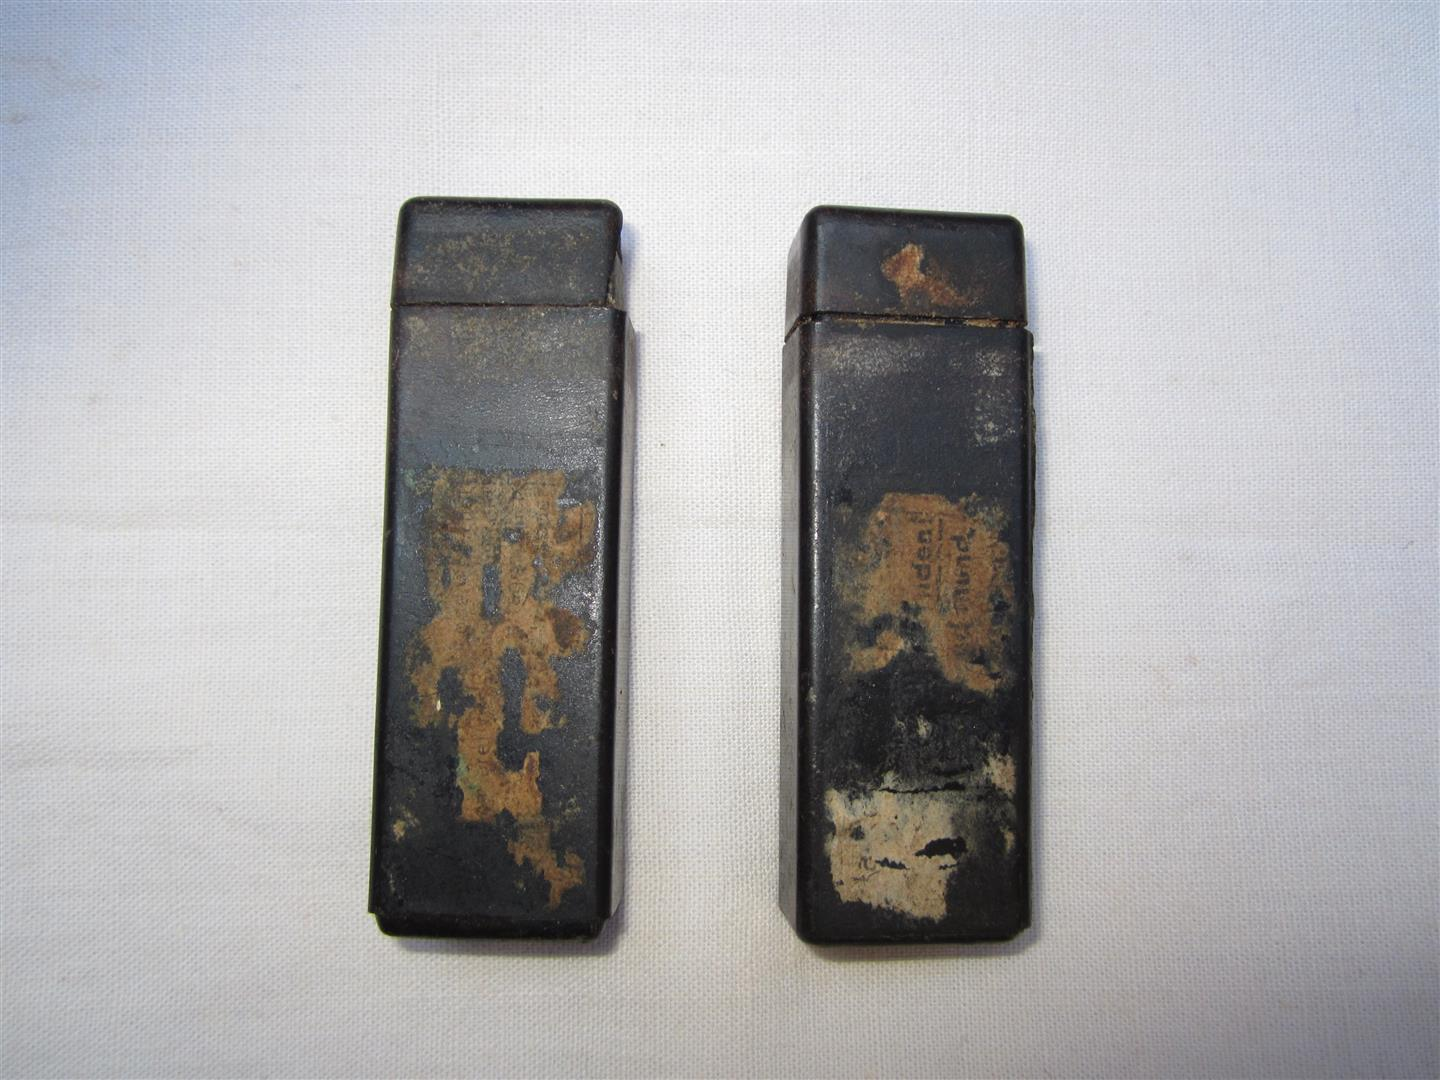 WW2 German antigas tablets 'Losatin'